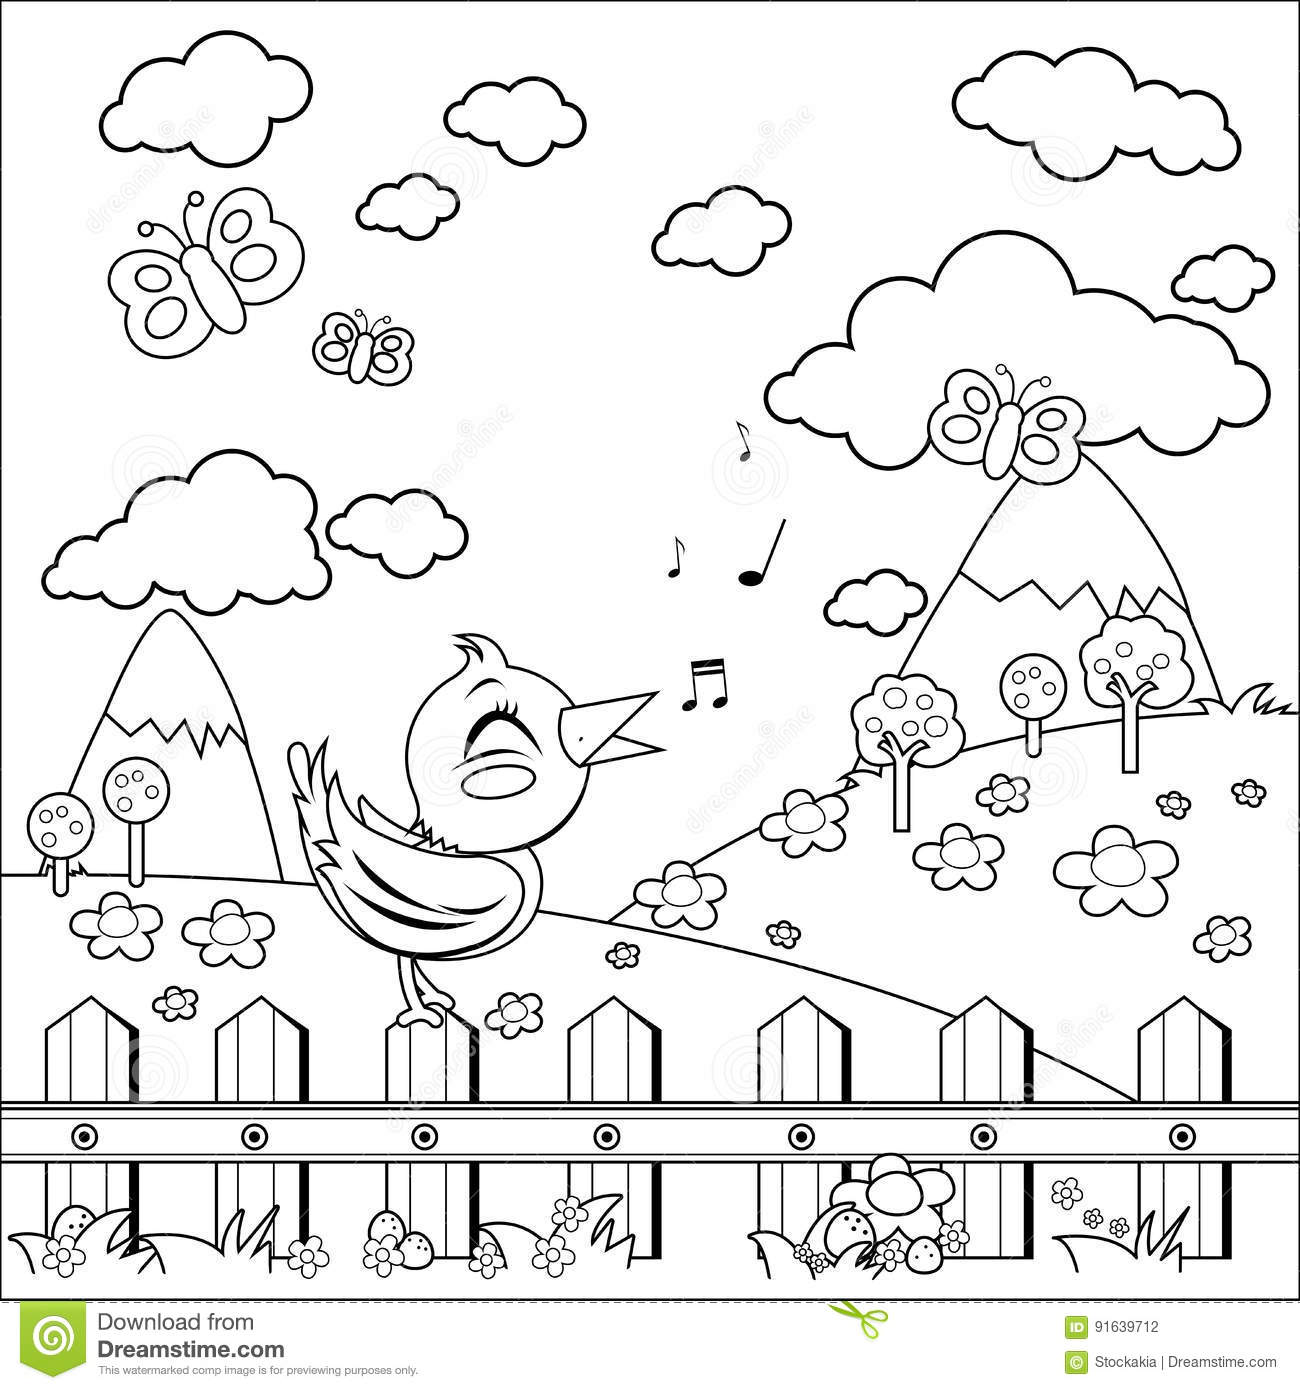 Bird sitting on a fence and singing in the countryside. Coloring book page